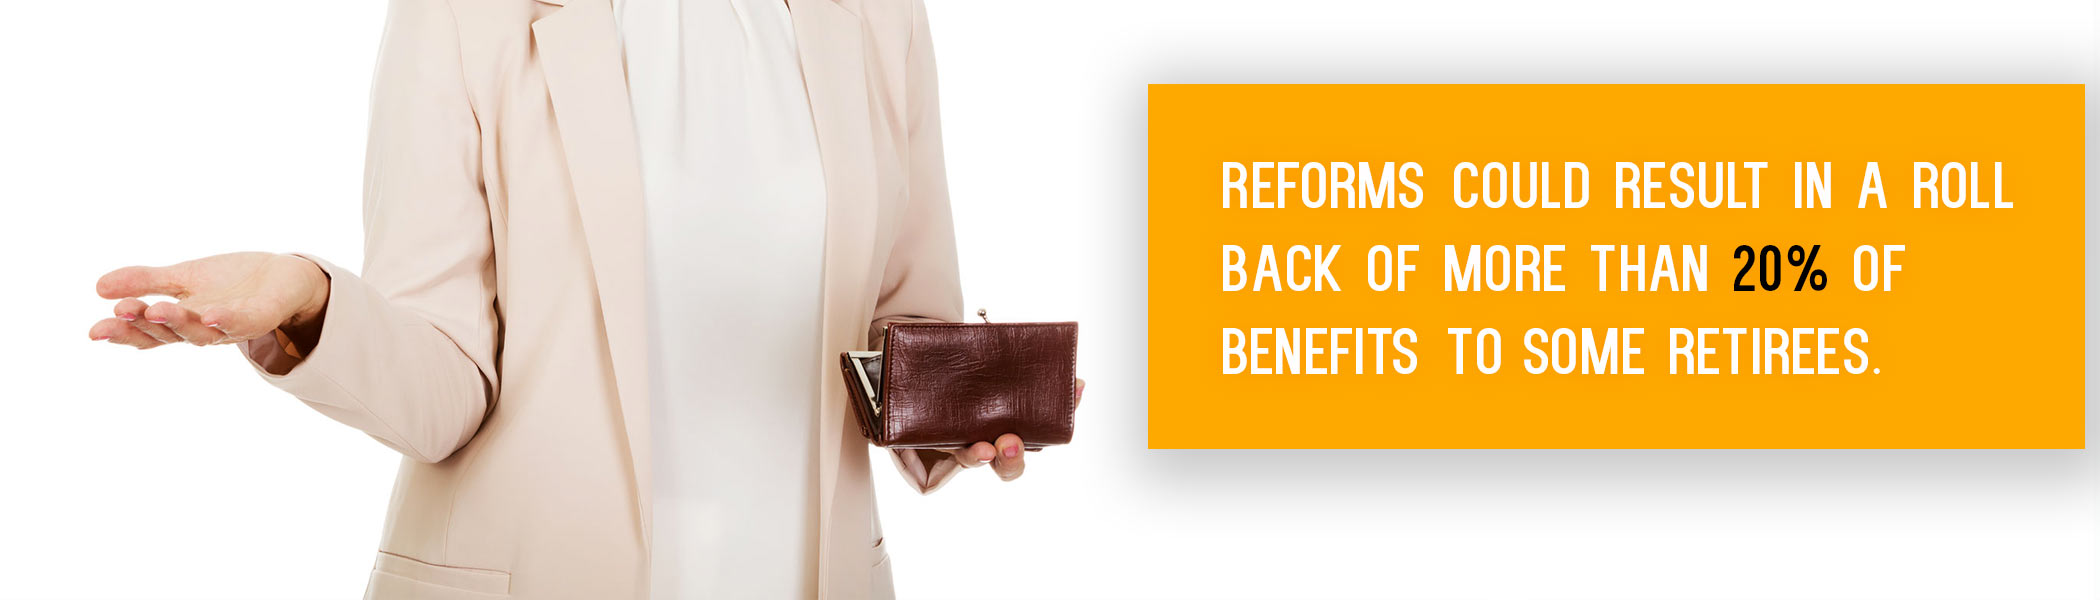 Reforms could result in a roll back of more than 20% of benefits to some retirees.